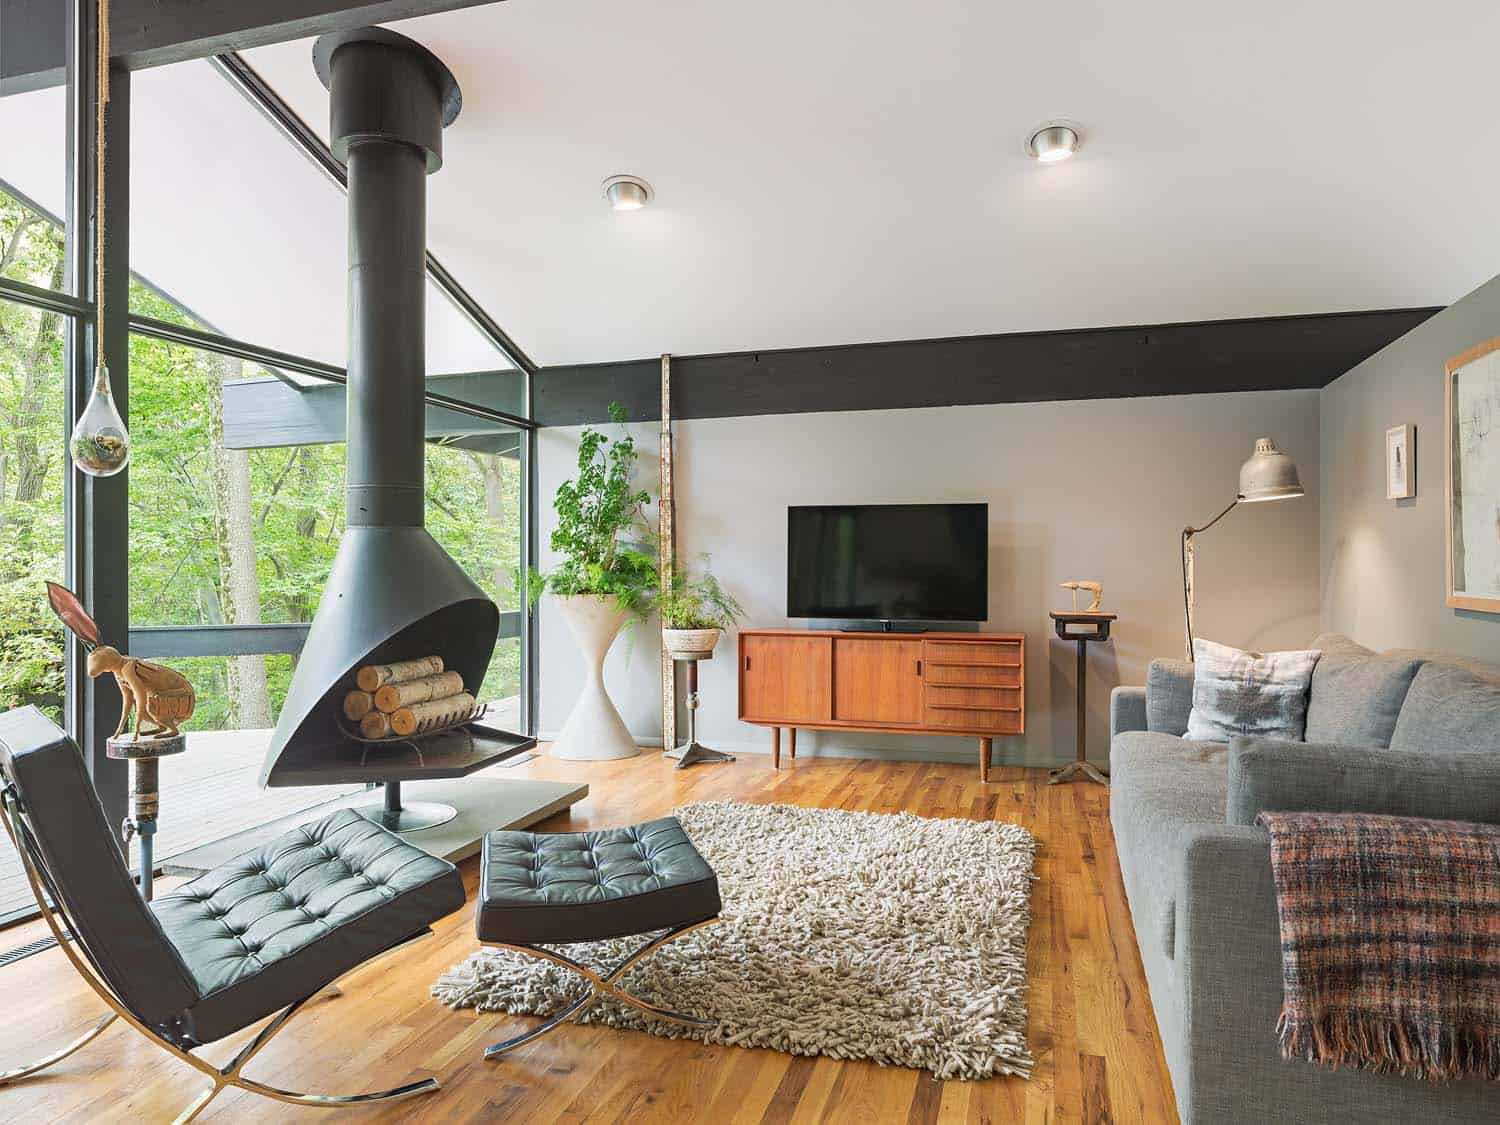 A stylish mid century modern makeover draws nature inside mid century modern home studio robert jamieson 01